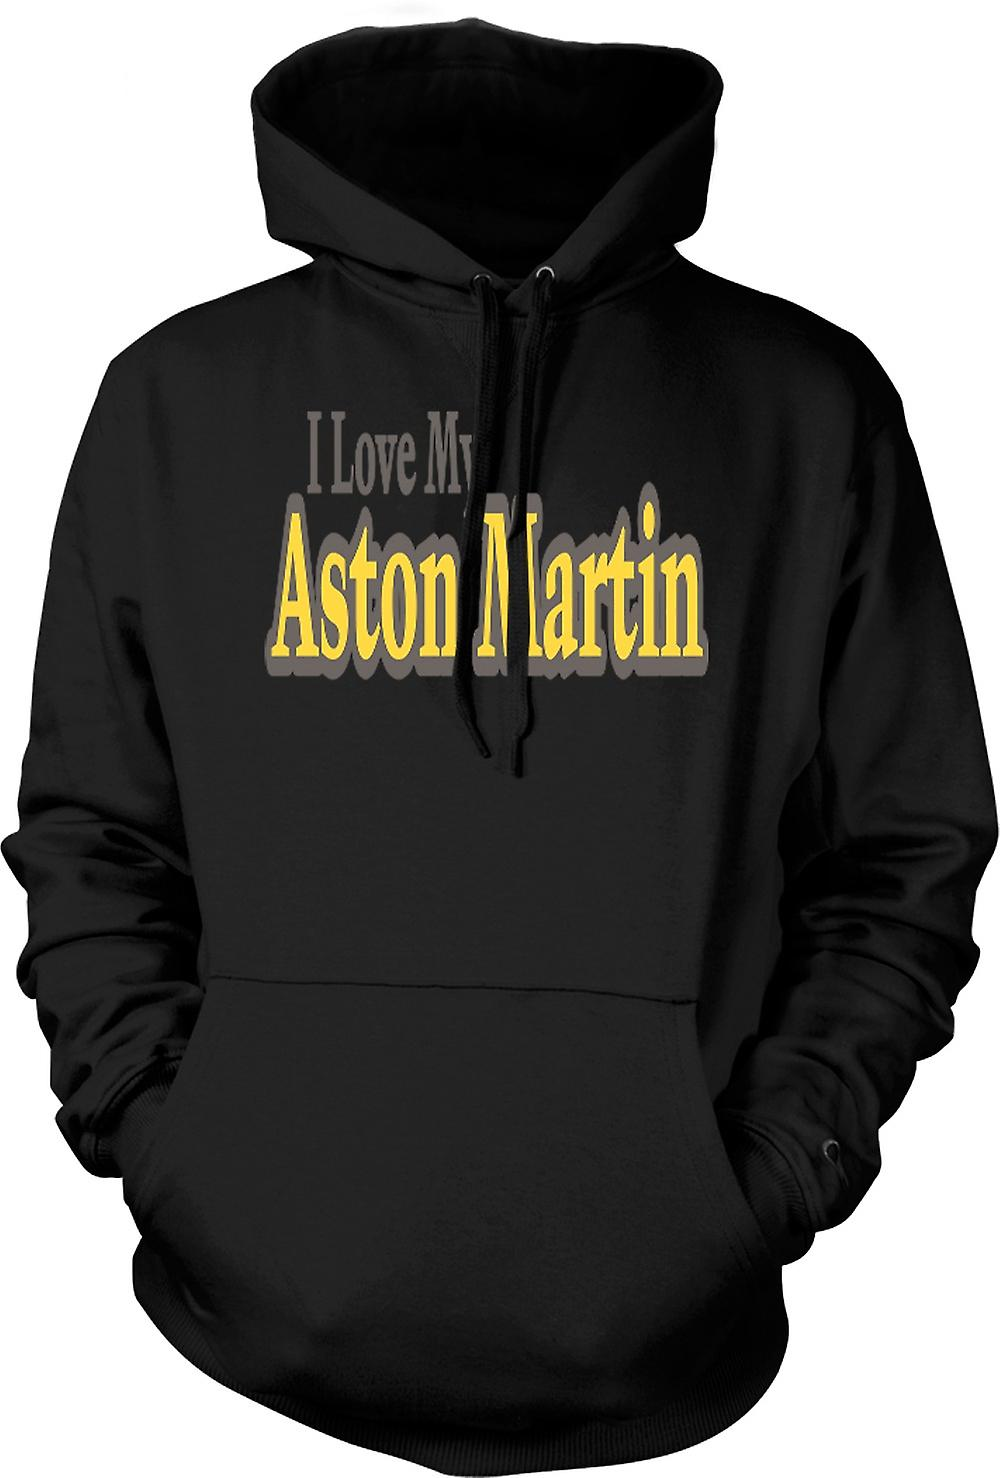 Mens Hoodie - I Love My Aston Martin - Car Enthusiast